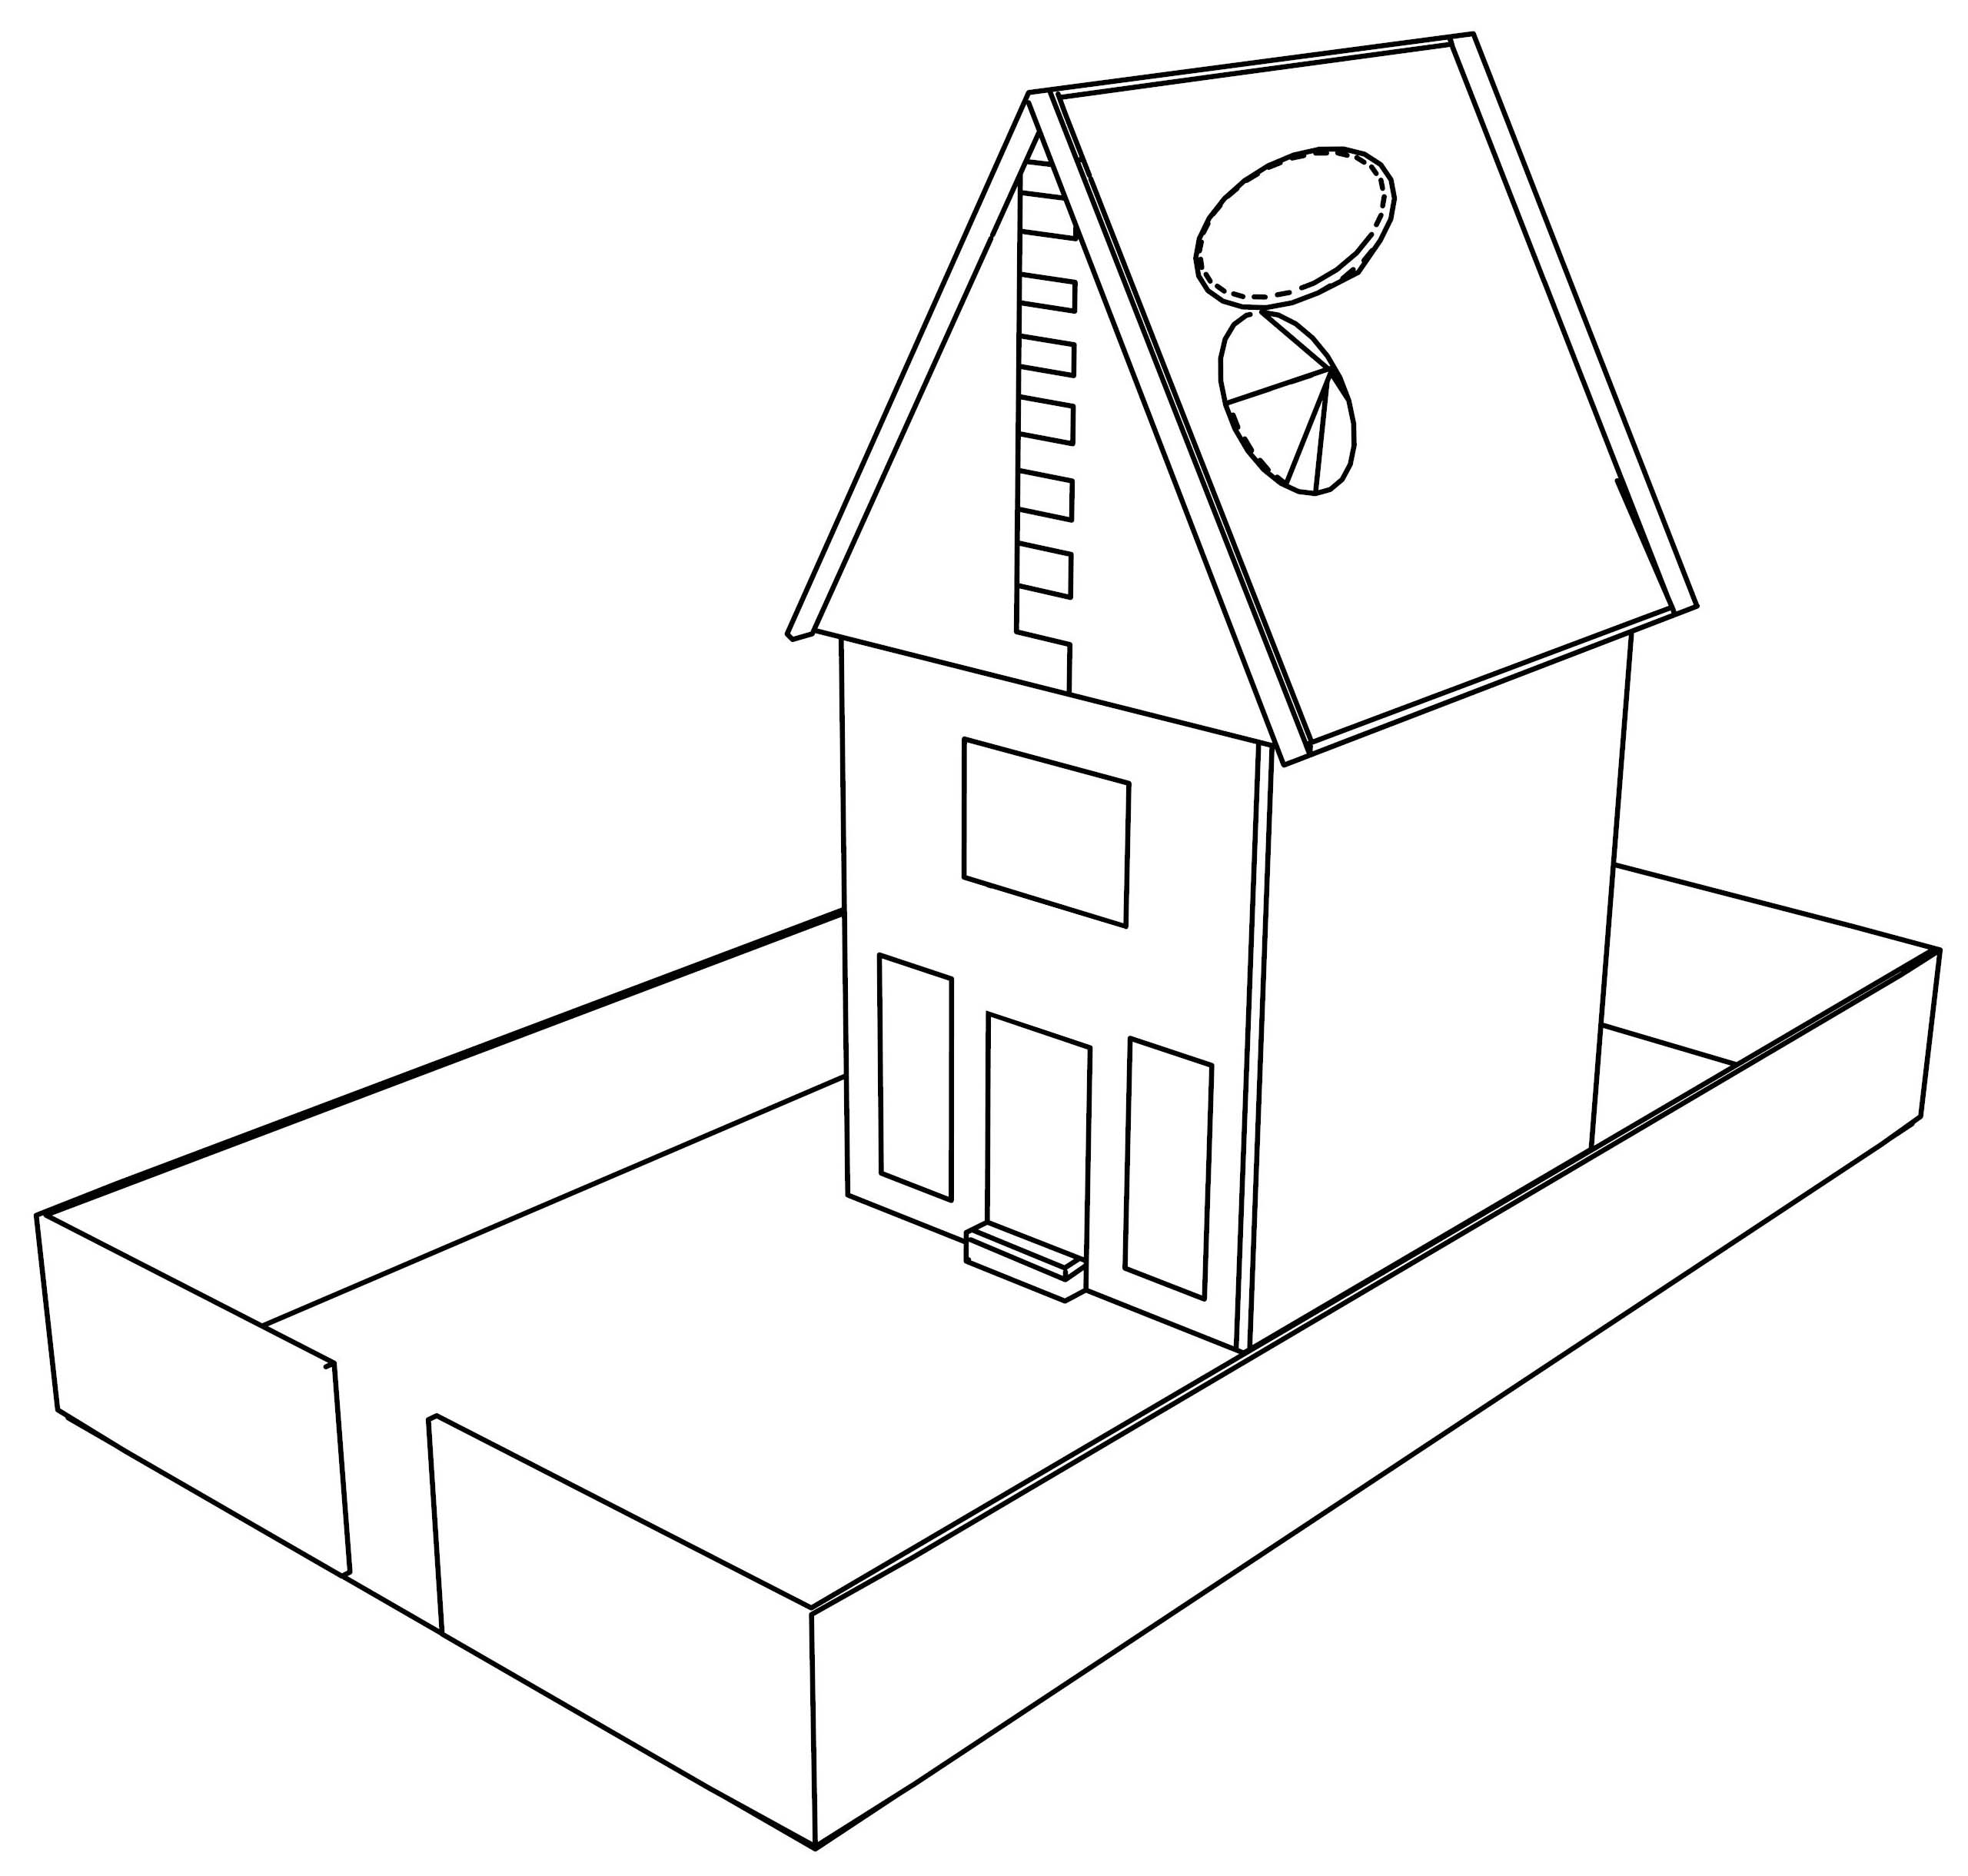 Basic Line Cartoon House Coloring Page